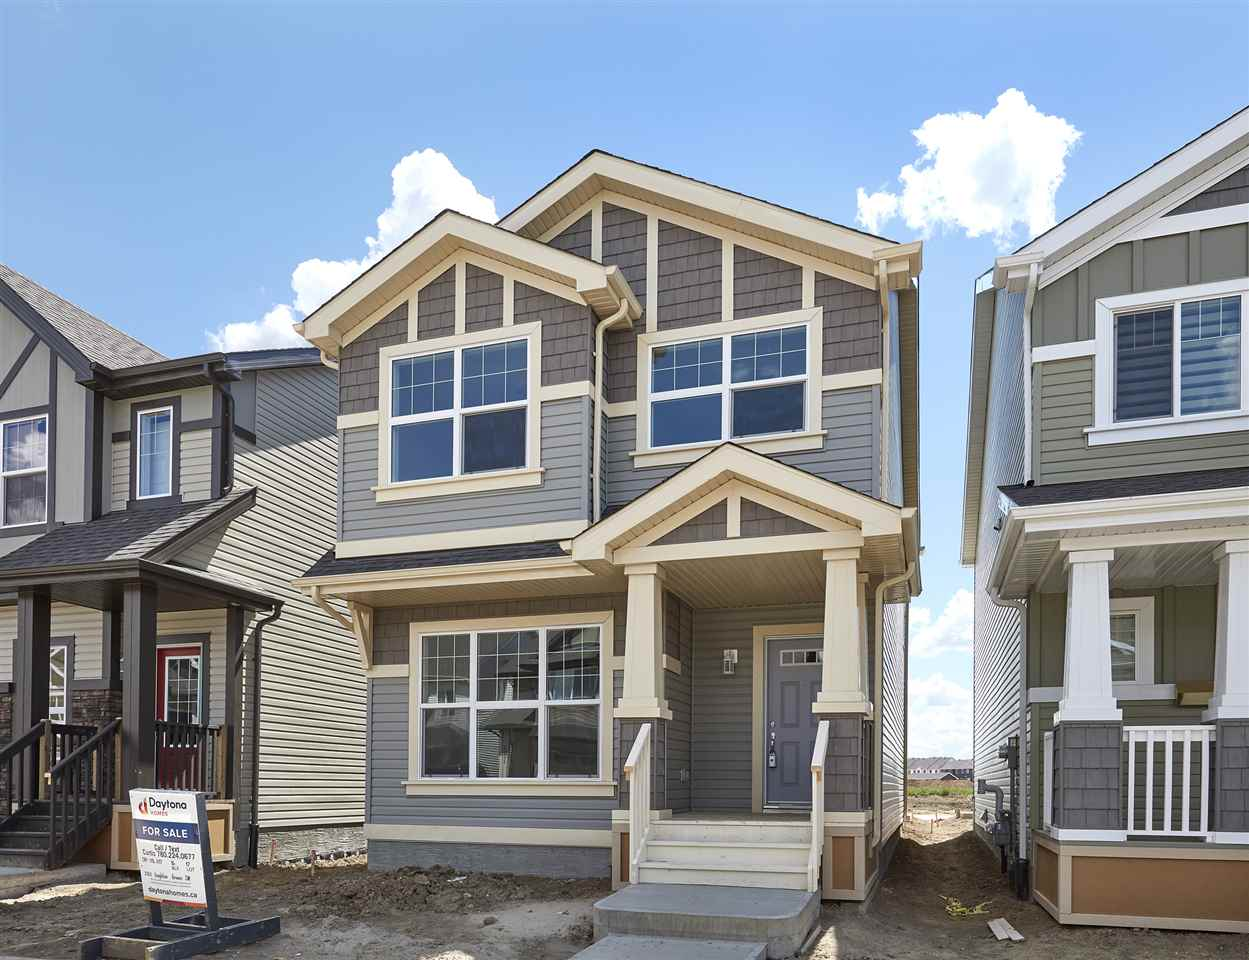 Welcome to Chappelle ? small town feeling in the big city of YEG! The Scion-z style built (2017) by Daytona Homes is a 1426sqft wonderful family home ? 3 beds, 2.5 baths! A spacious foyer welcomes your guests! You will love the open concept style ? laminate & tile flooring throughout & 9 foot ceilings on the main floor. The Kitchen is beautifully finished with quartz countertops, beautiful cabinets, a prep island, an extended eating bar, ceramic backsplash, a pantry & a spacious breakfast nook! The spacious living room features large windows & 9 foot ceilings.  The boot/storage & powder room complete the main floor. Retreat upstairs to the spacious master suite, which features a 3 piece ensuite & a walk in closet. Both children's rooms are a good size, a computer space, upper laundry & 4 piece bath complete this level. Downstairs (the Basement) is unfinished & waiting for your final touches! ZONED FOR Donald R Getty SCHOOL Opening September 2017